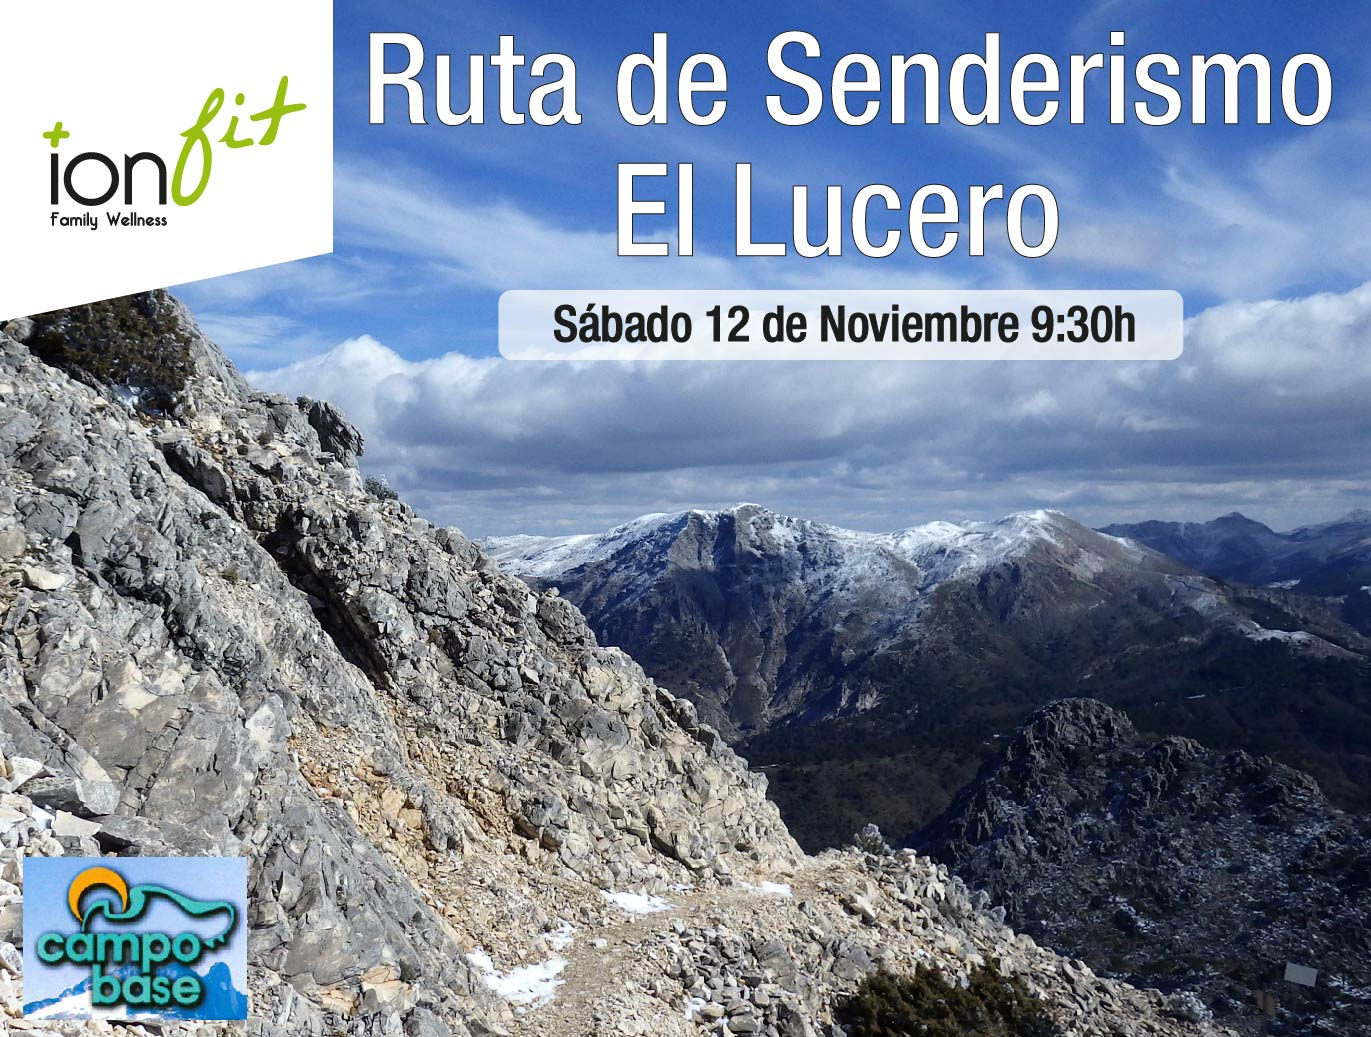 ruta-de-senderismo_lucero_blog_noticia